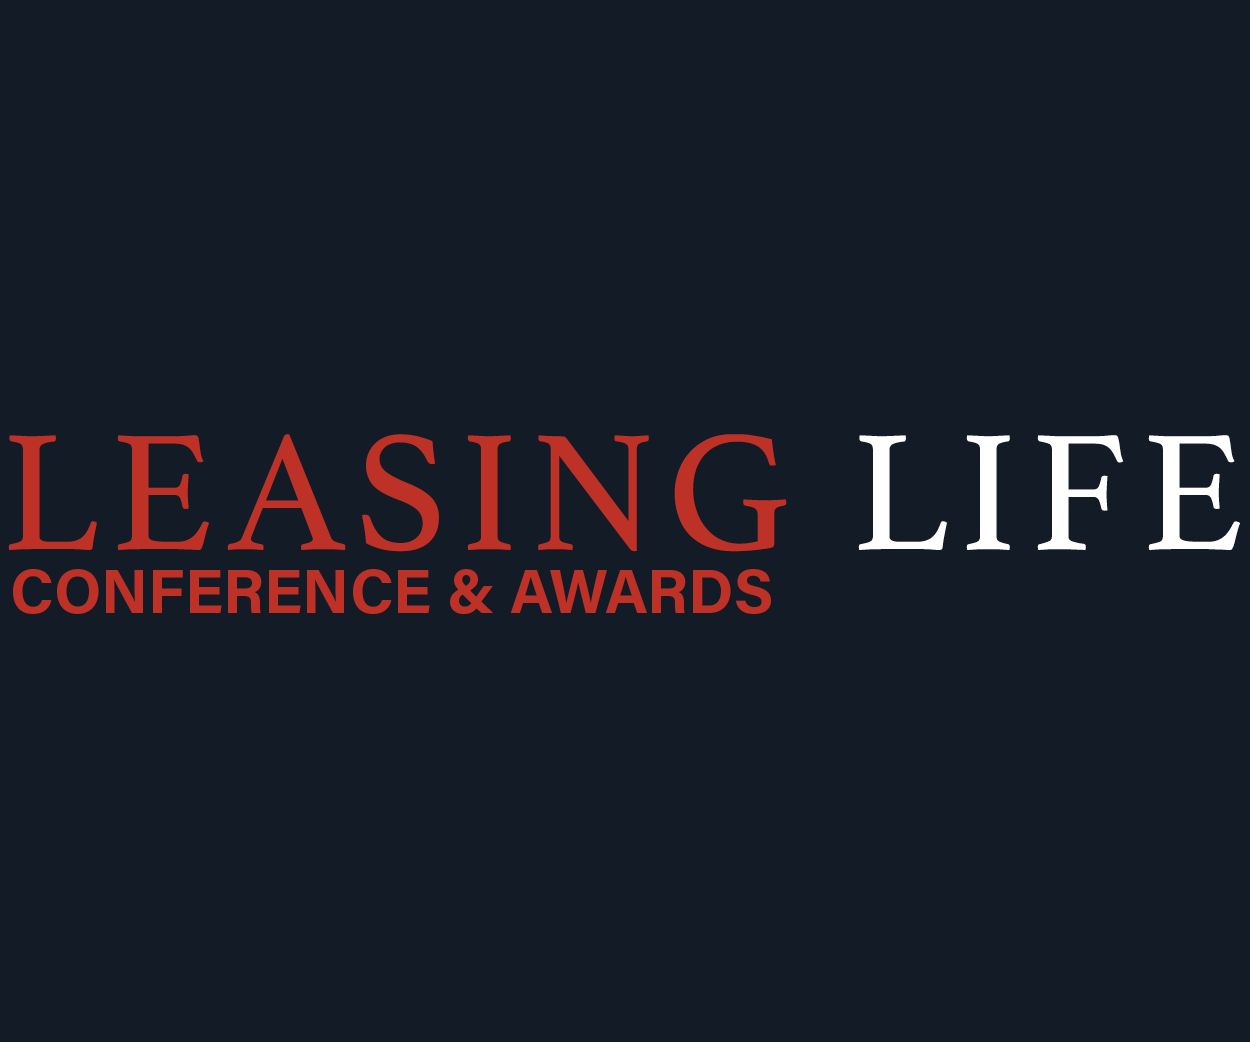 Leasing Life – Conference & Awards